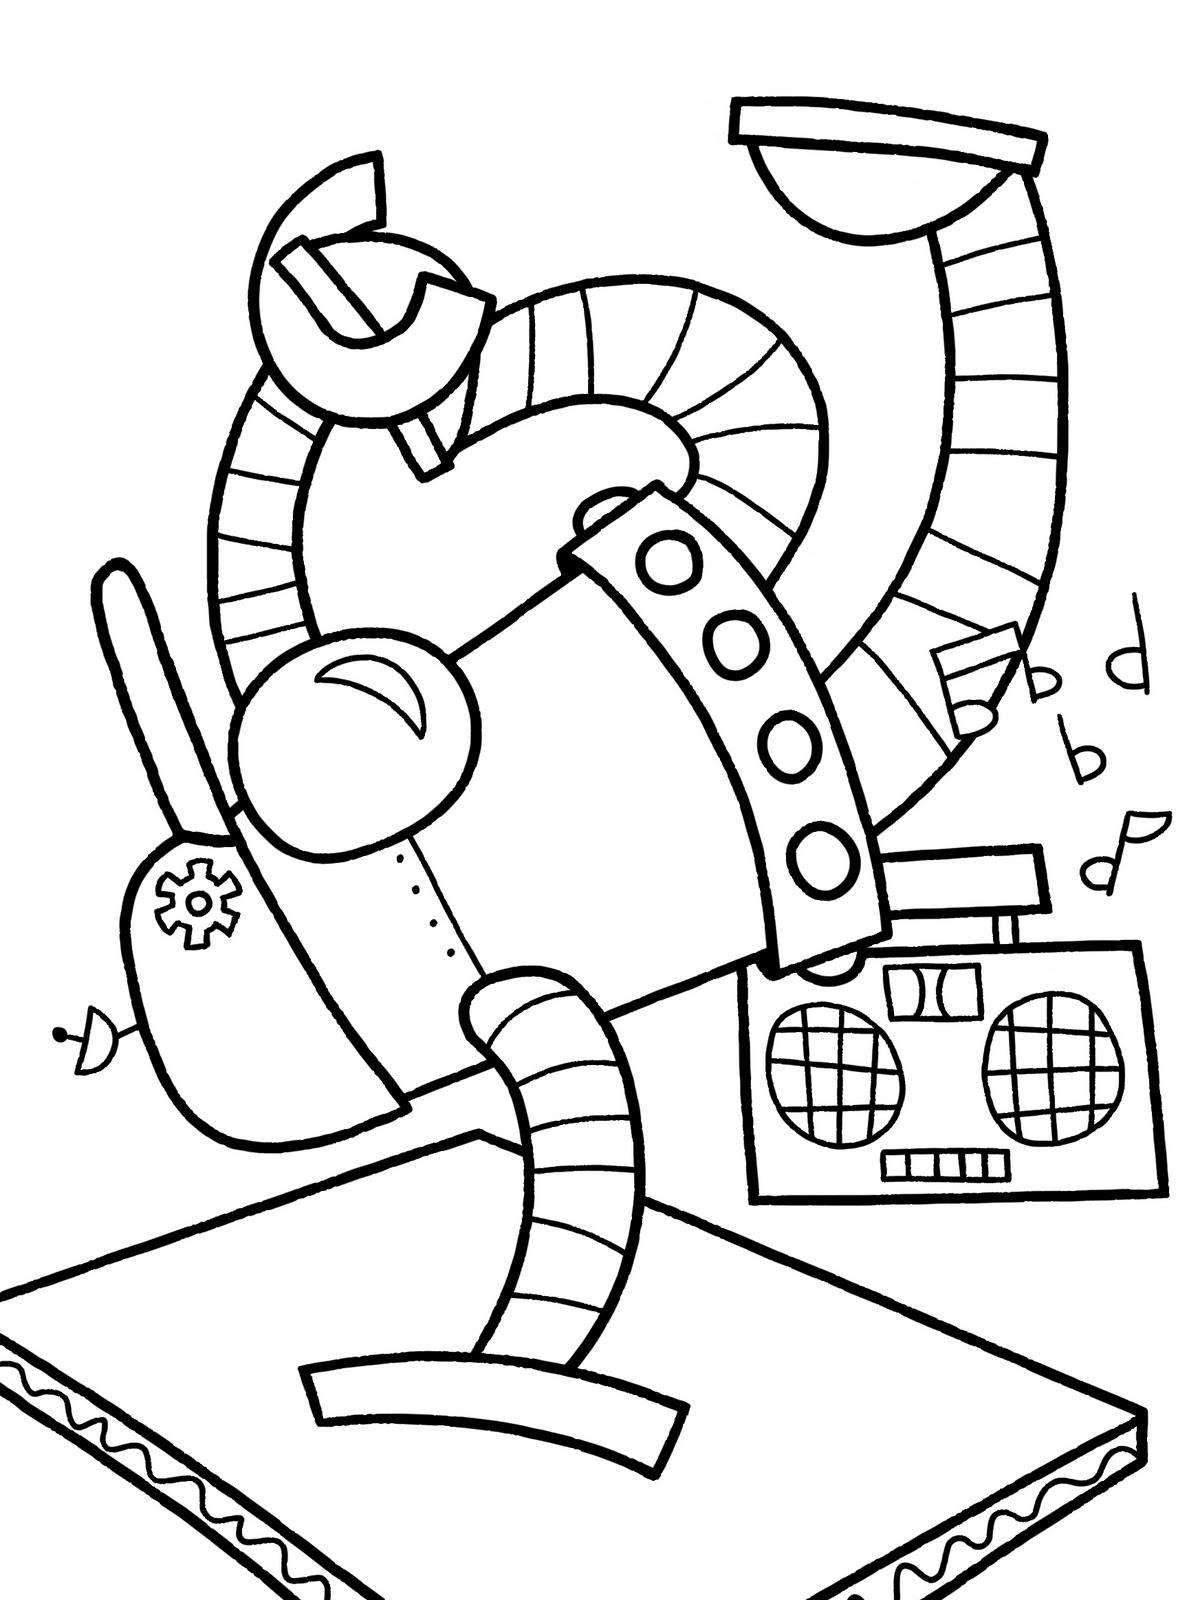 coloring book pages com - photo#32